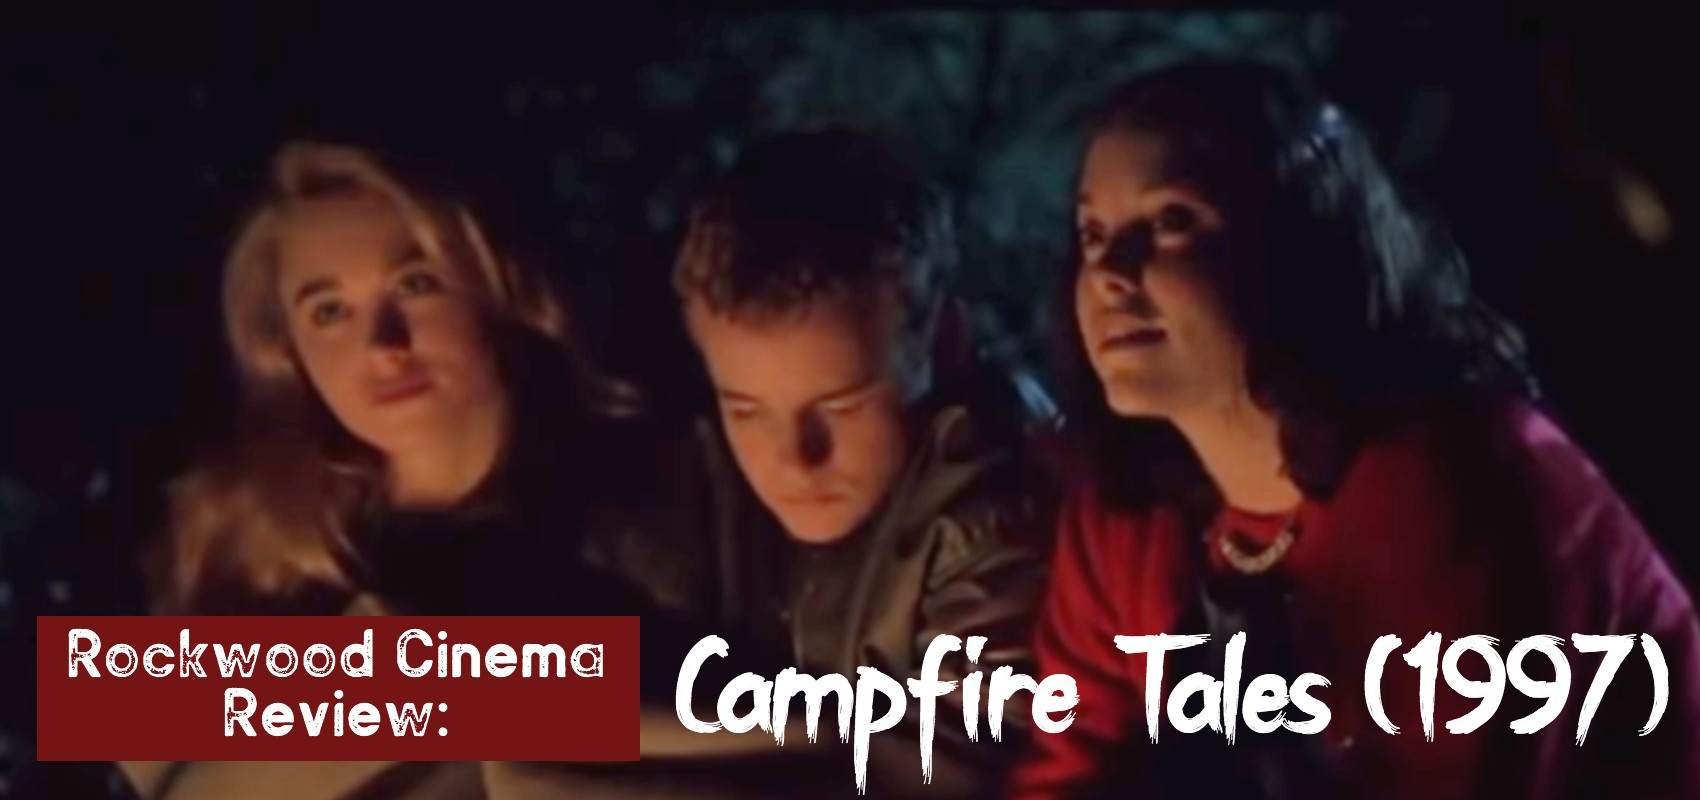 Three teens (two girls and one boy) sitting with the glow of the campfire on their face in the wooded darkness